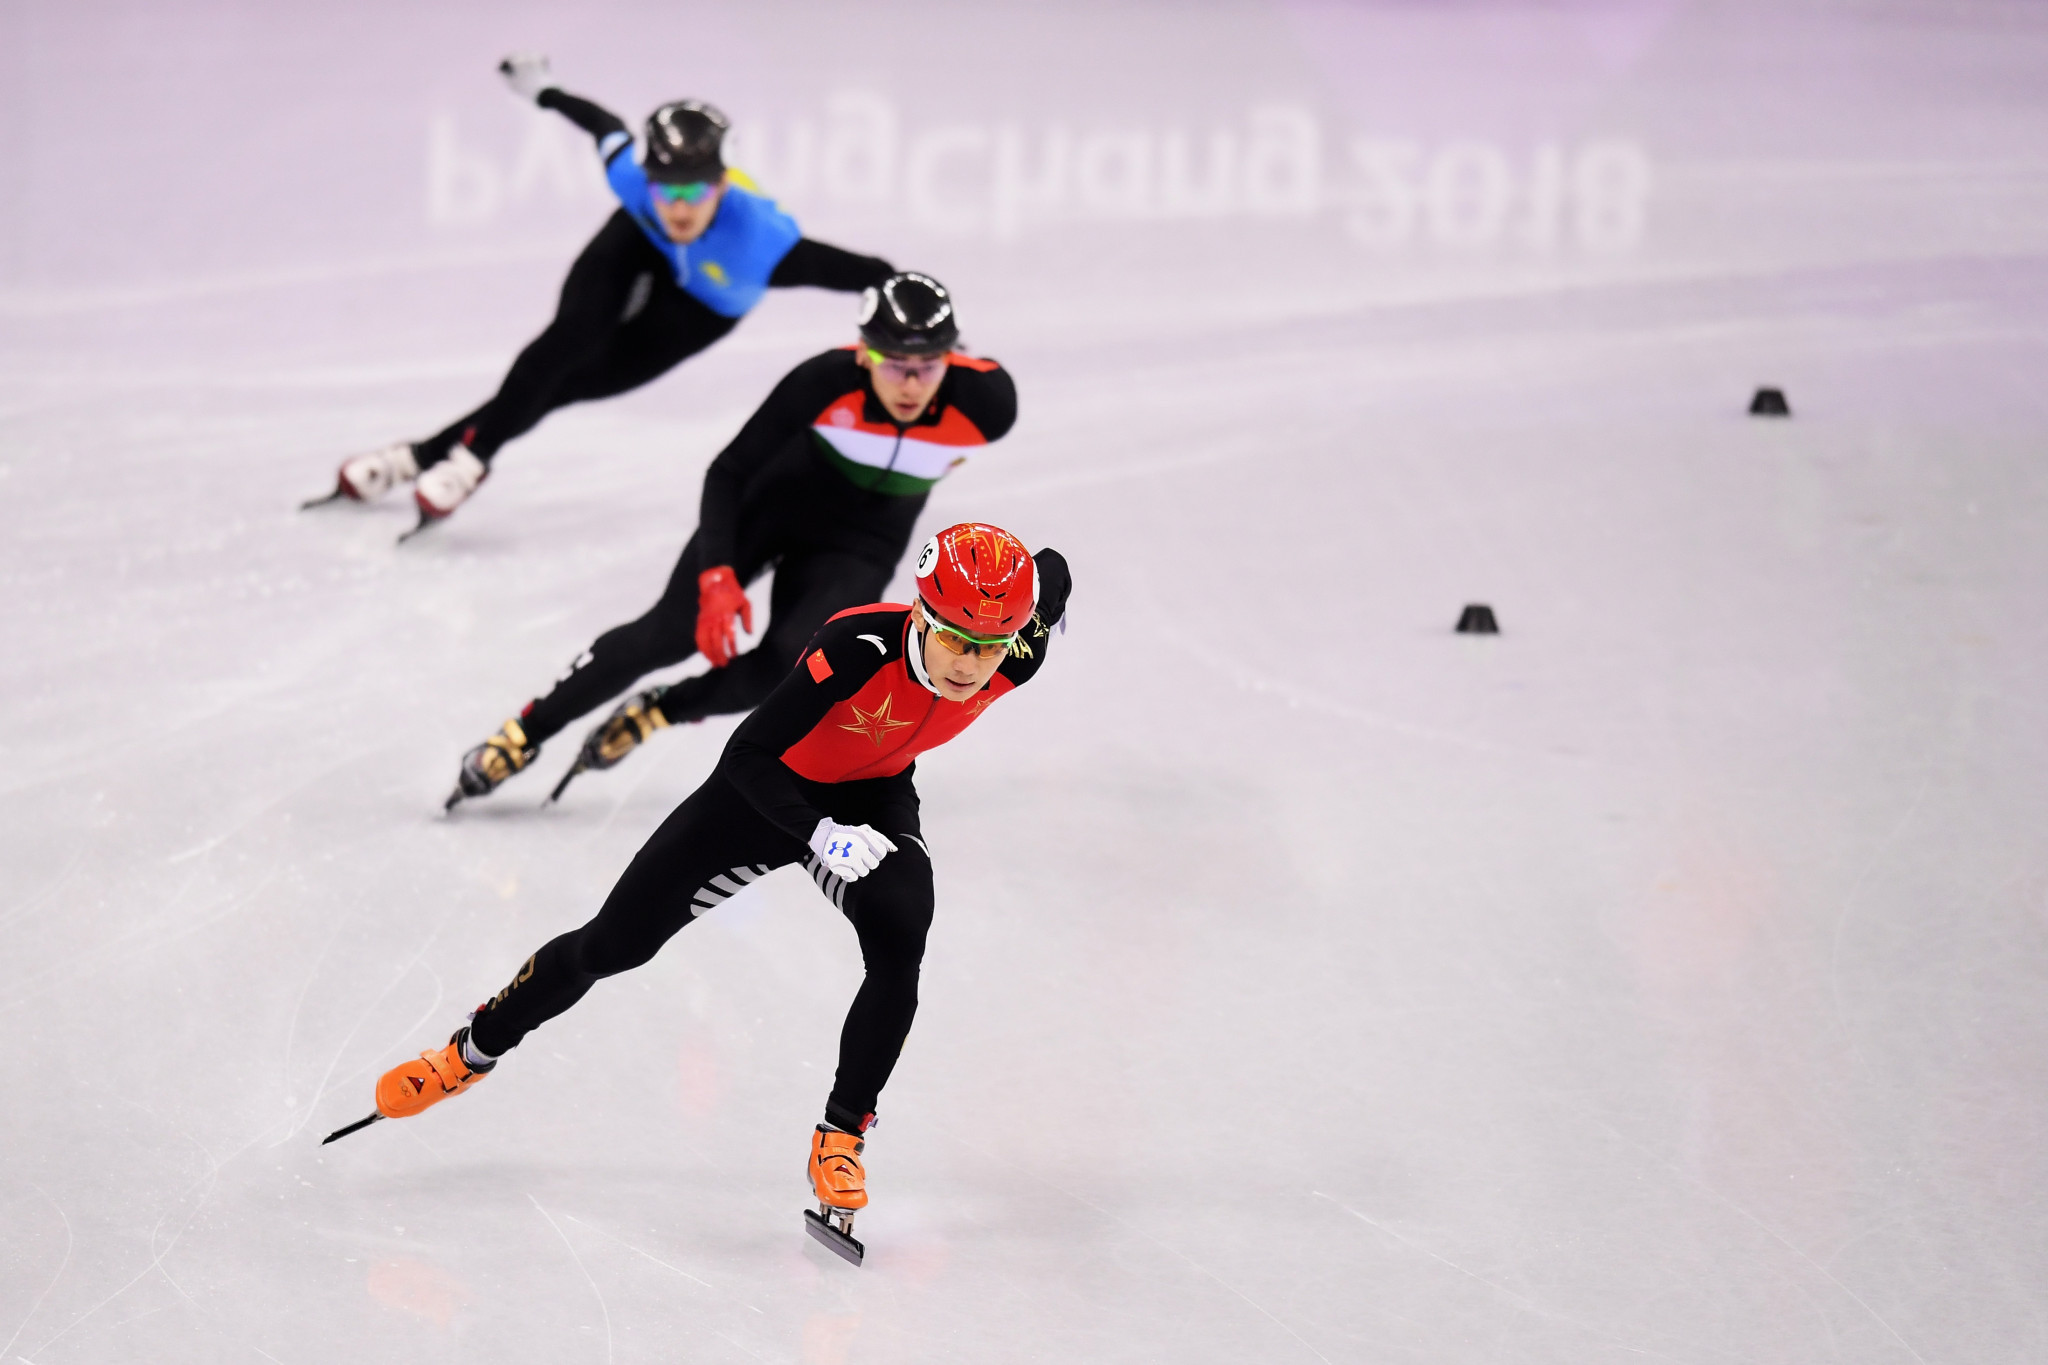 Olympic 500 metres champion Wu Dajing endured a difficult start to the World Short Track Speed Skating Championships ©Getty Images